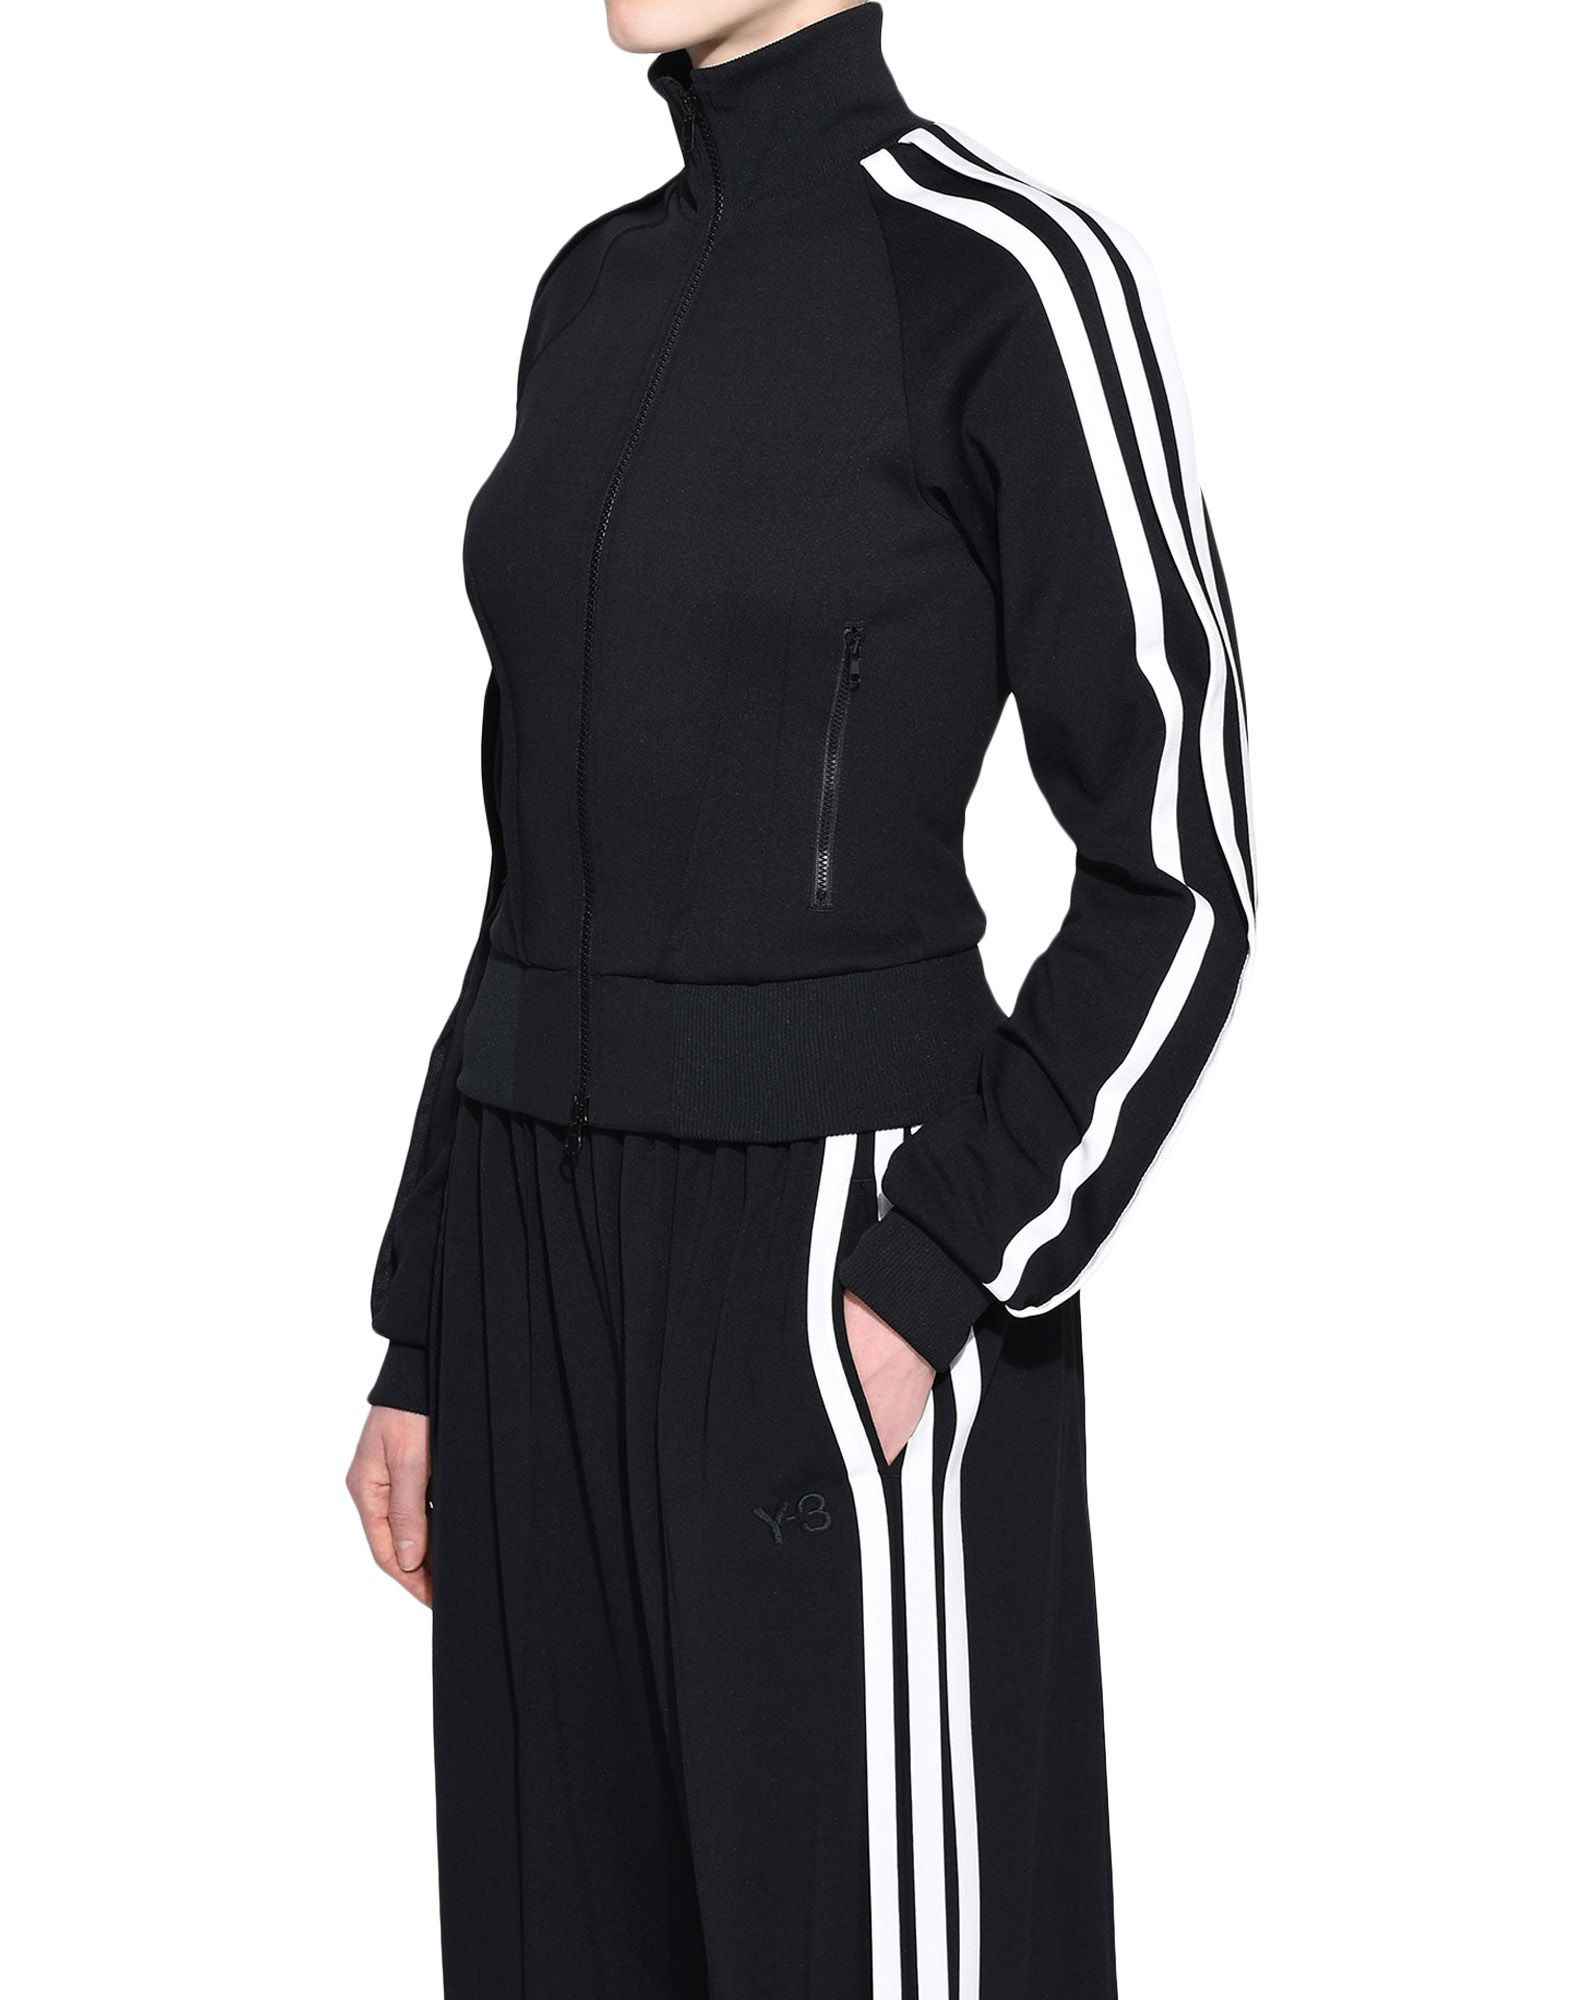 Y-3 Y-3 3-Stripes Selvedge Matte Track Jacket Track top Woman e